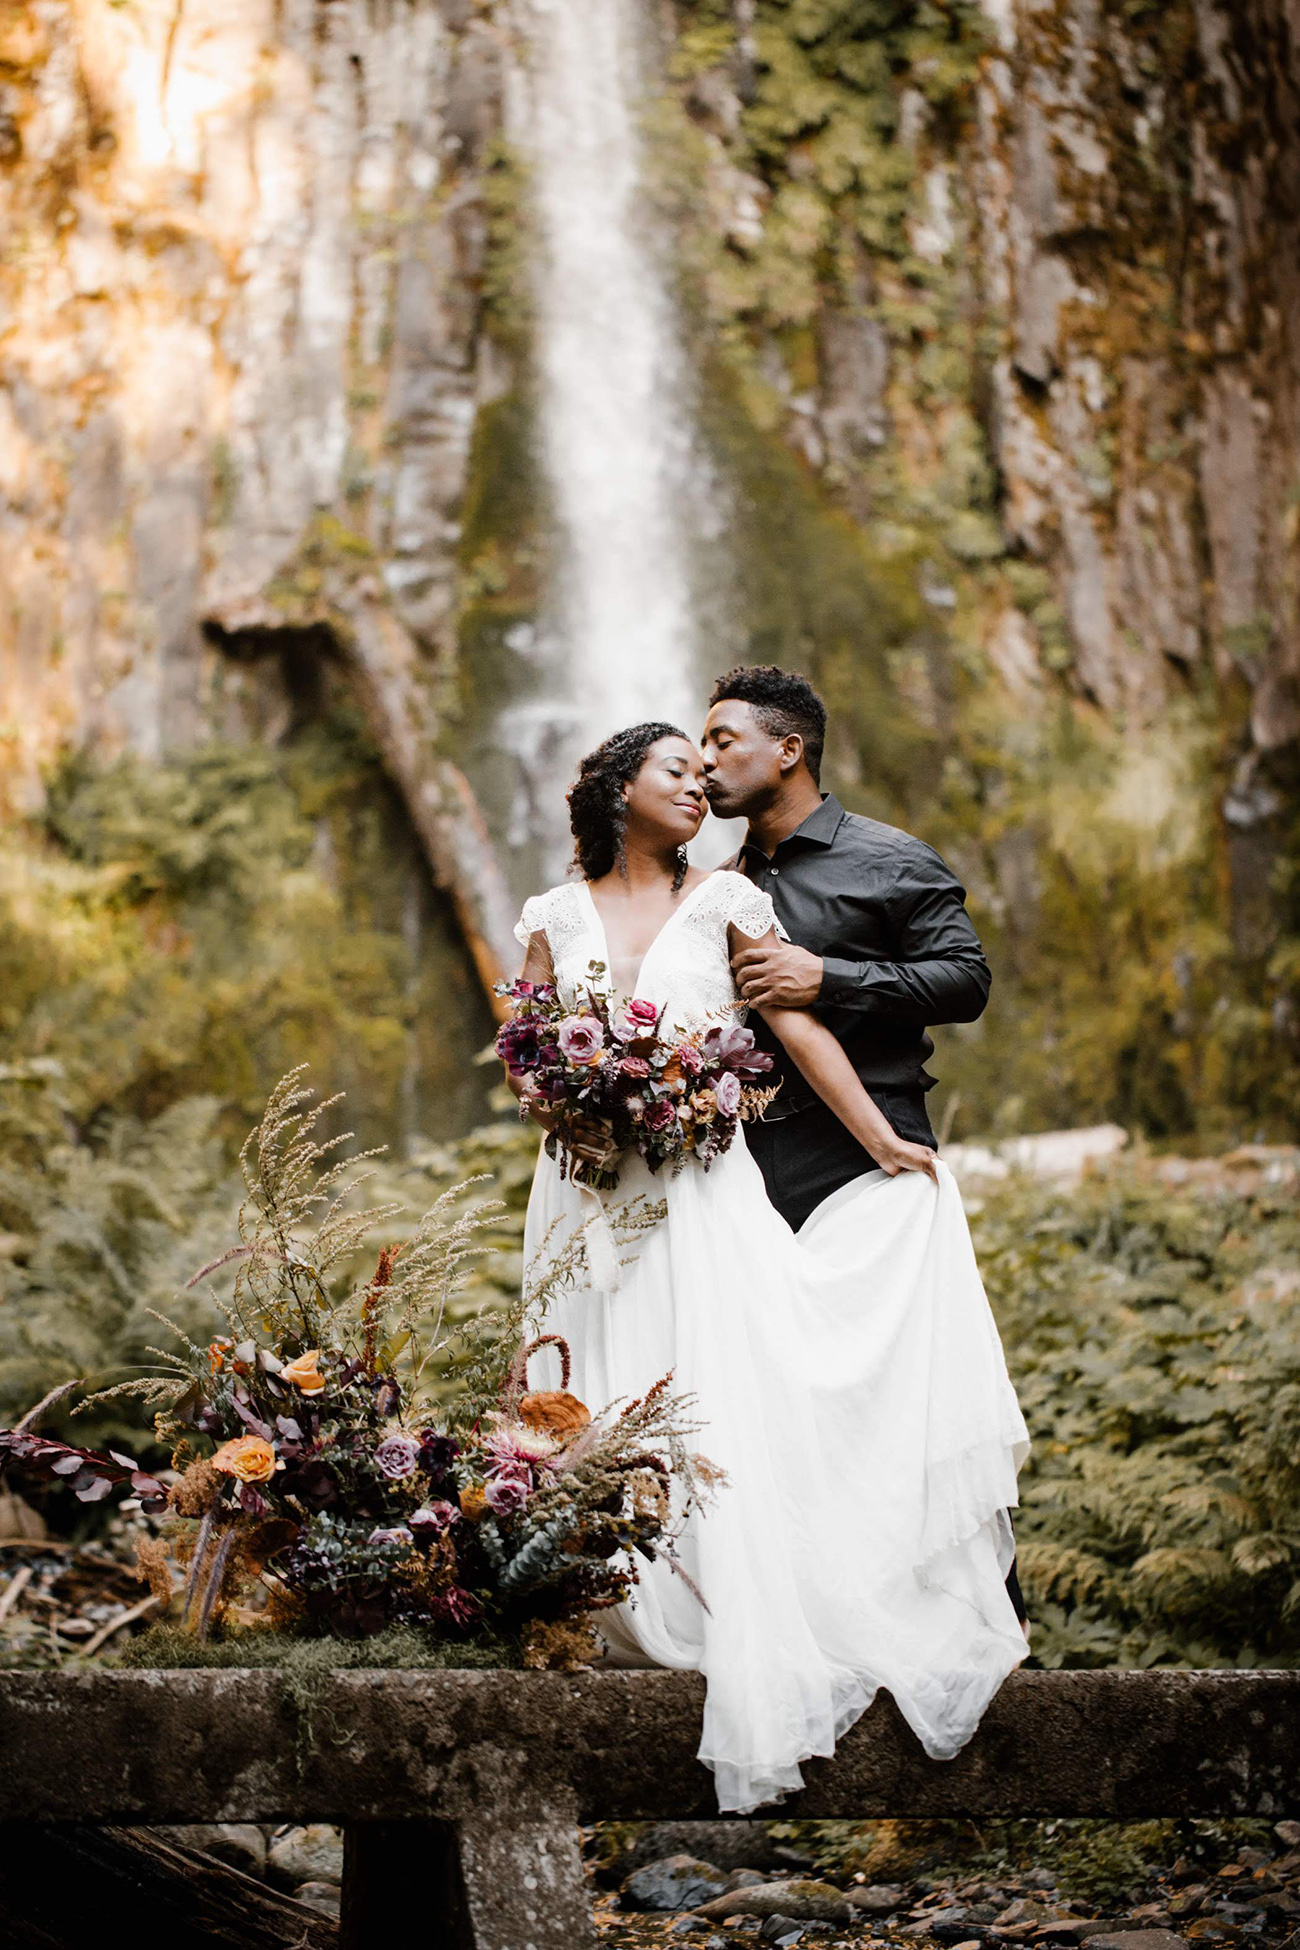 Elopement under a waterfall